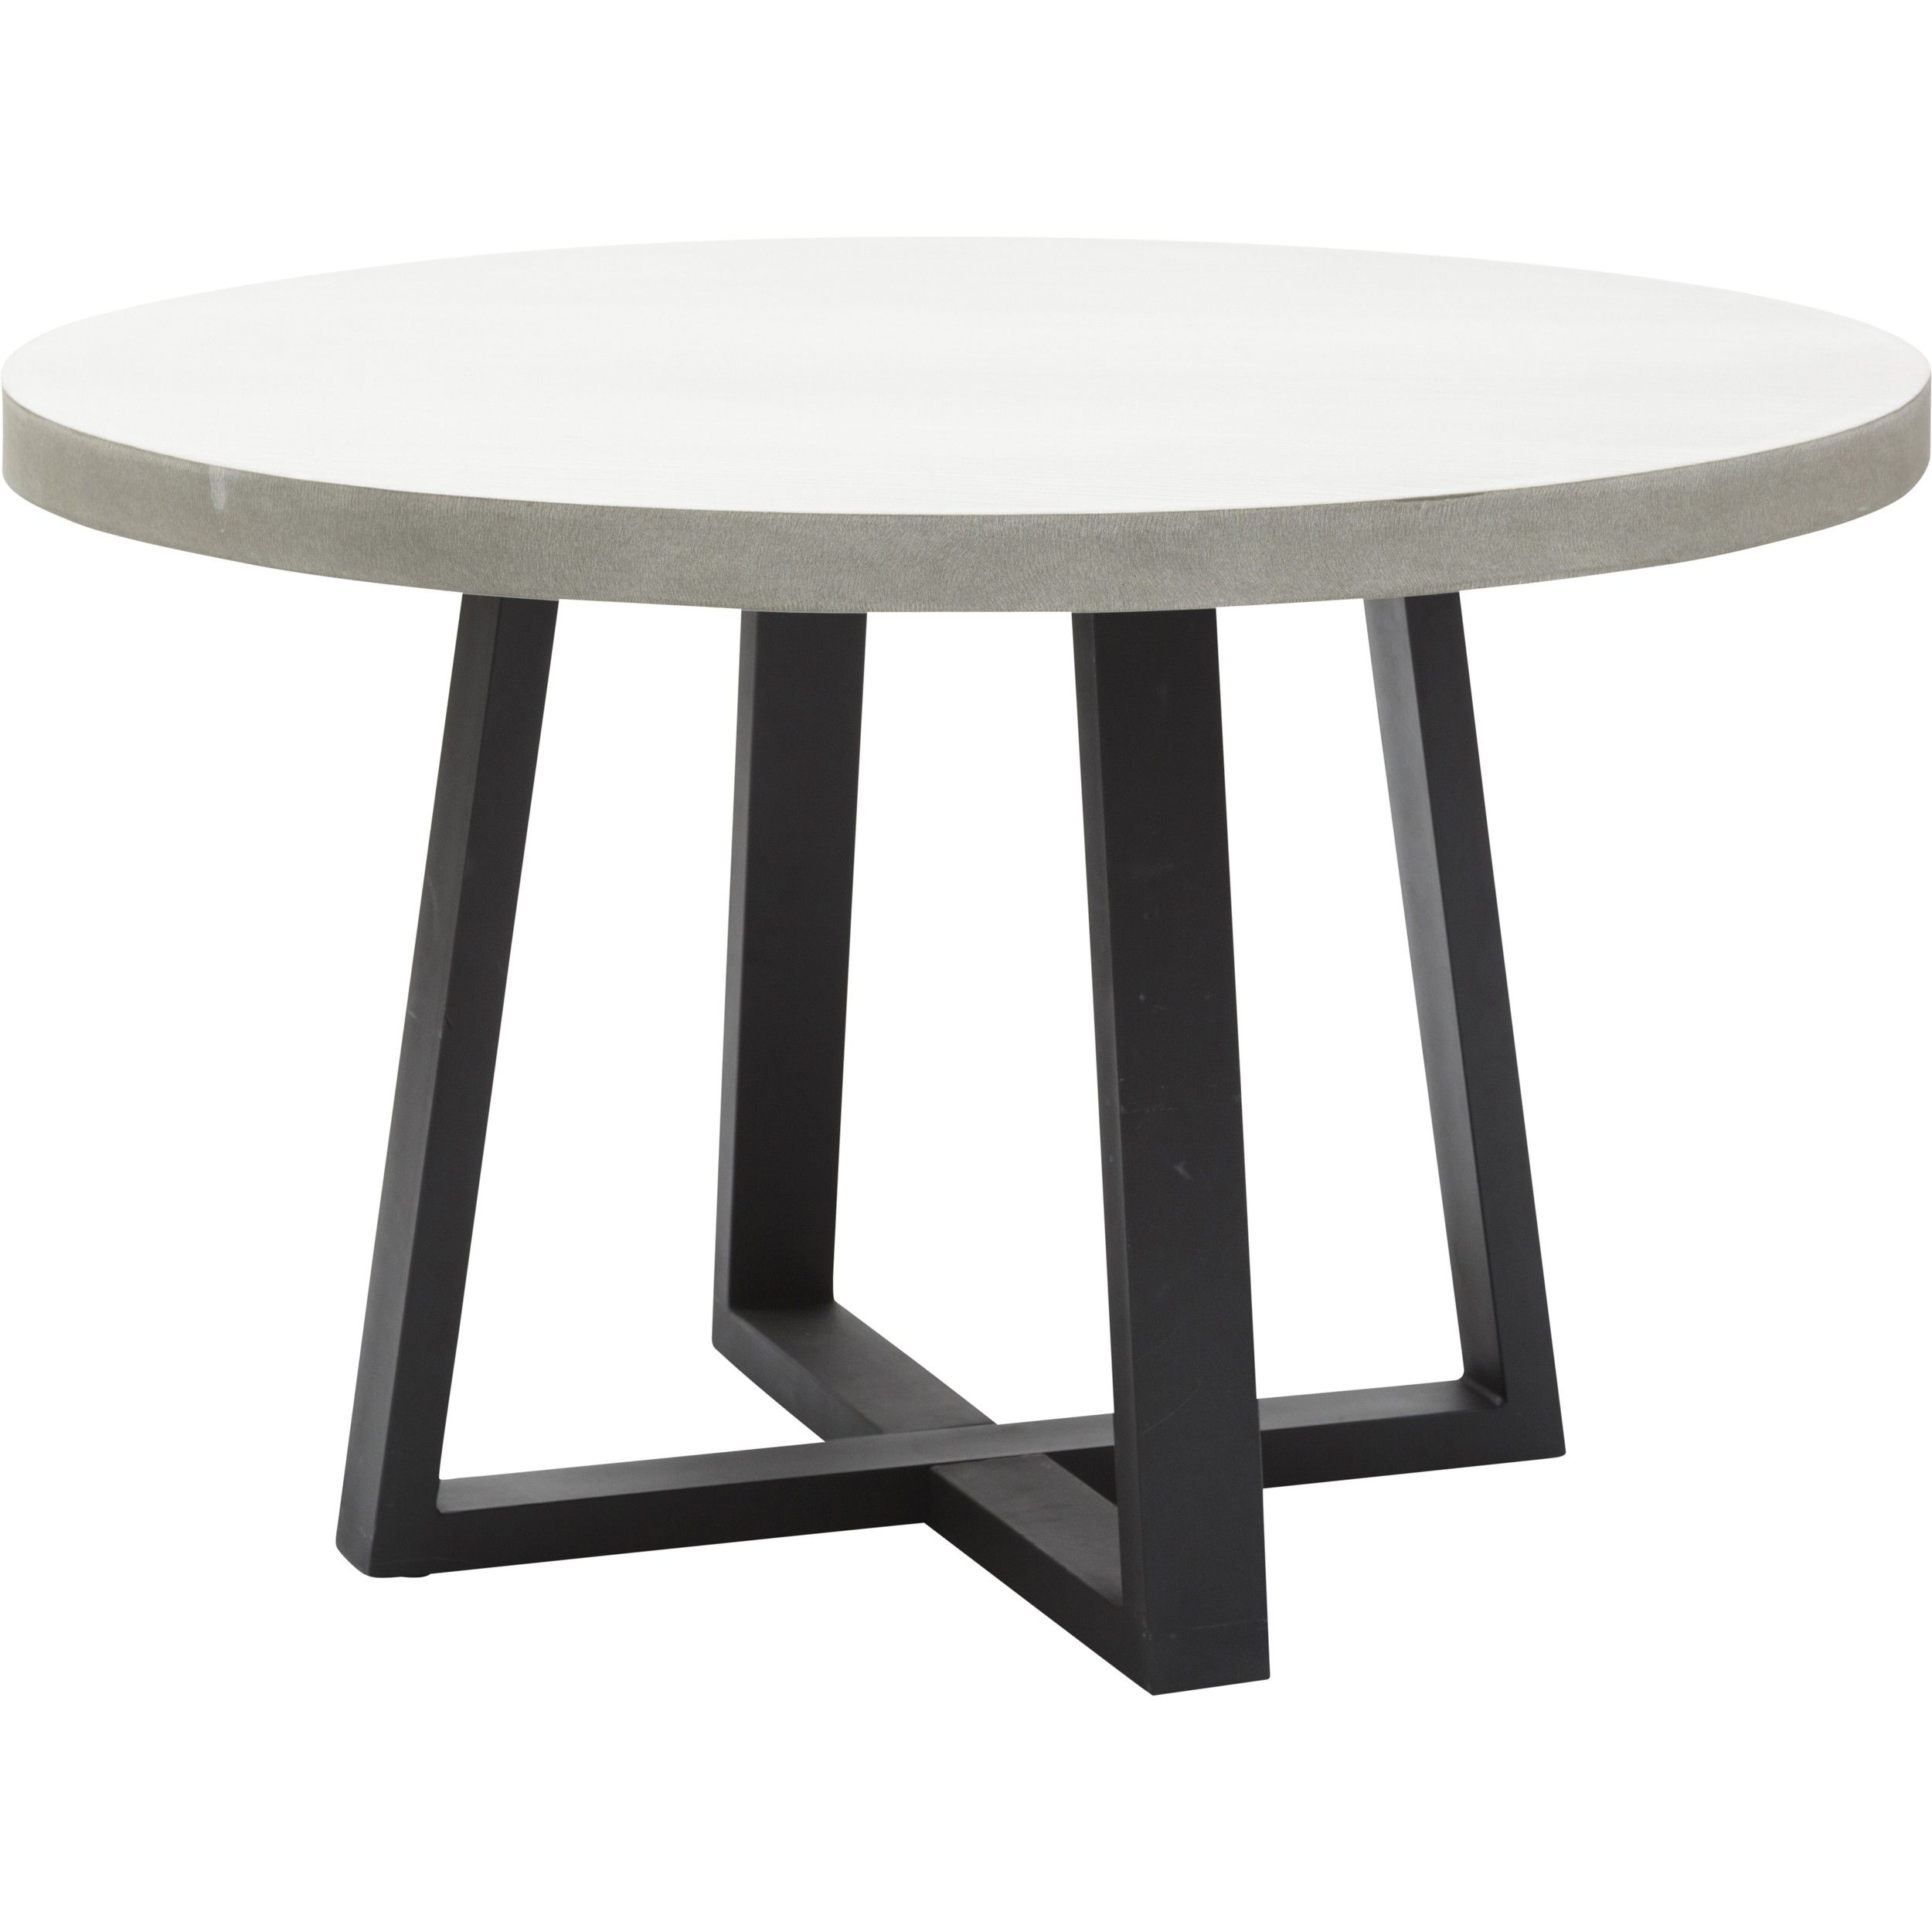 Cyrus 48 Quot Round Dining Table Furniture Round Dining